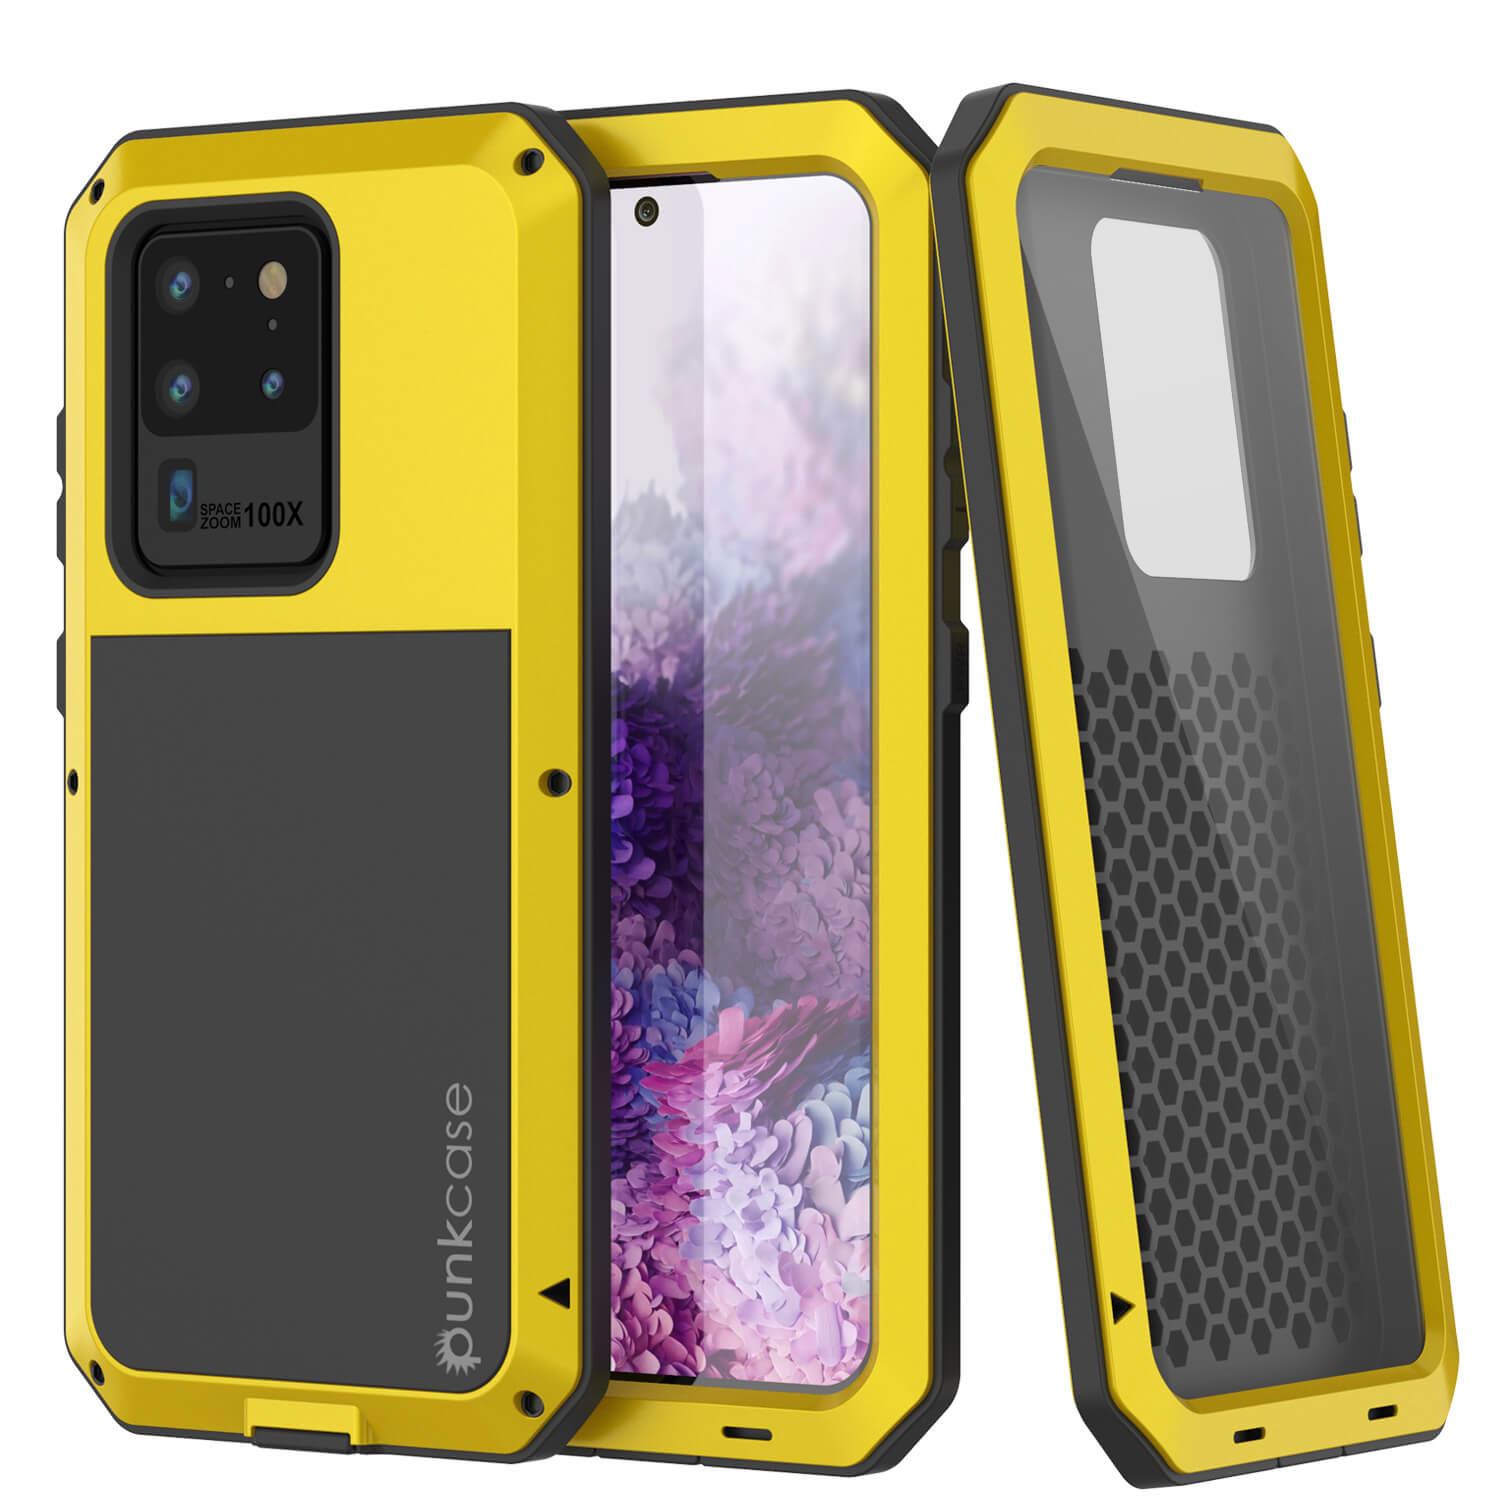 Galaxy S20 Ultra Metal Case, Heavy Duty Military Grade Rugged Armor Cover [Neon]